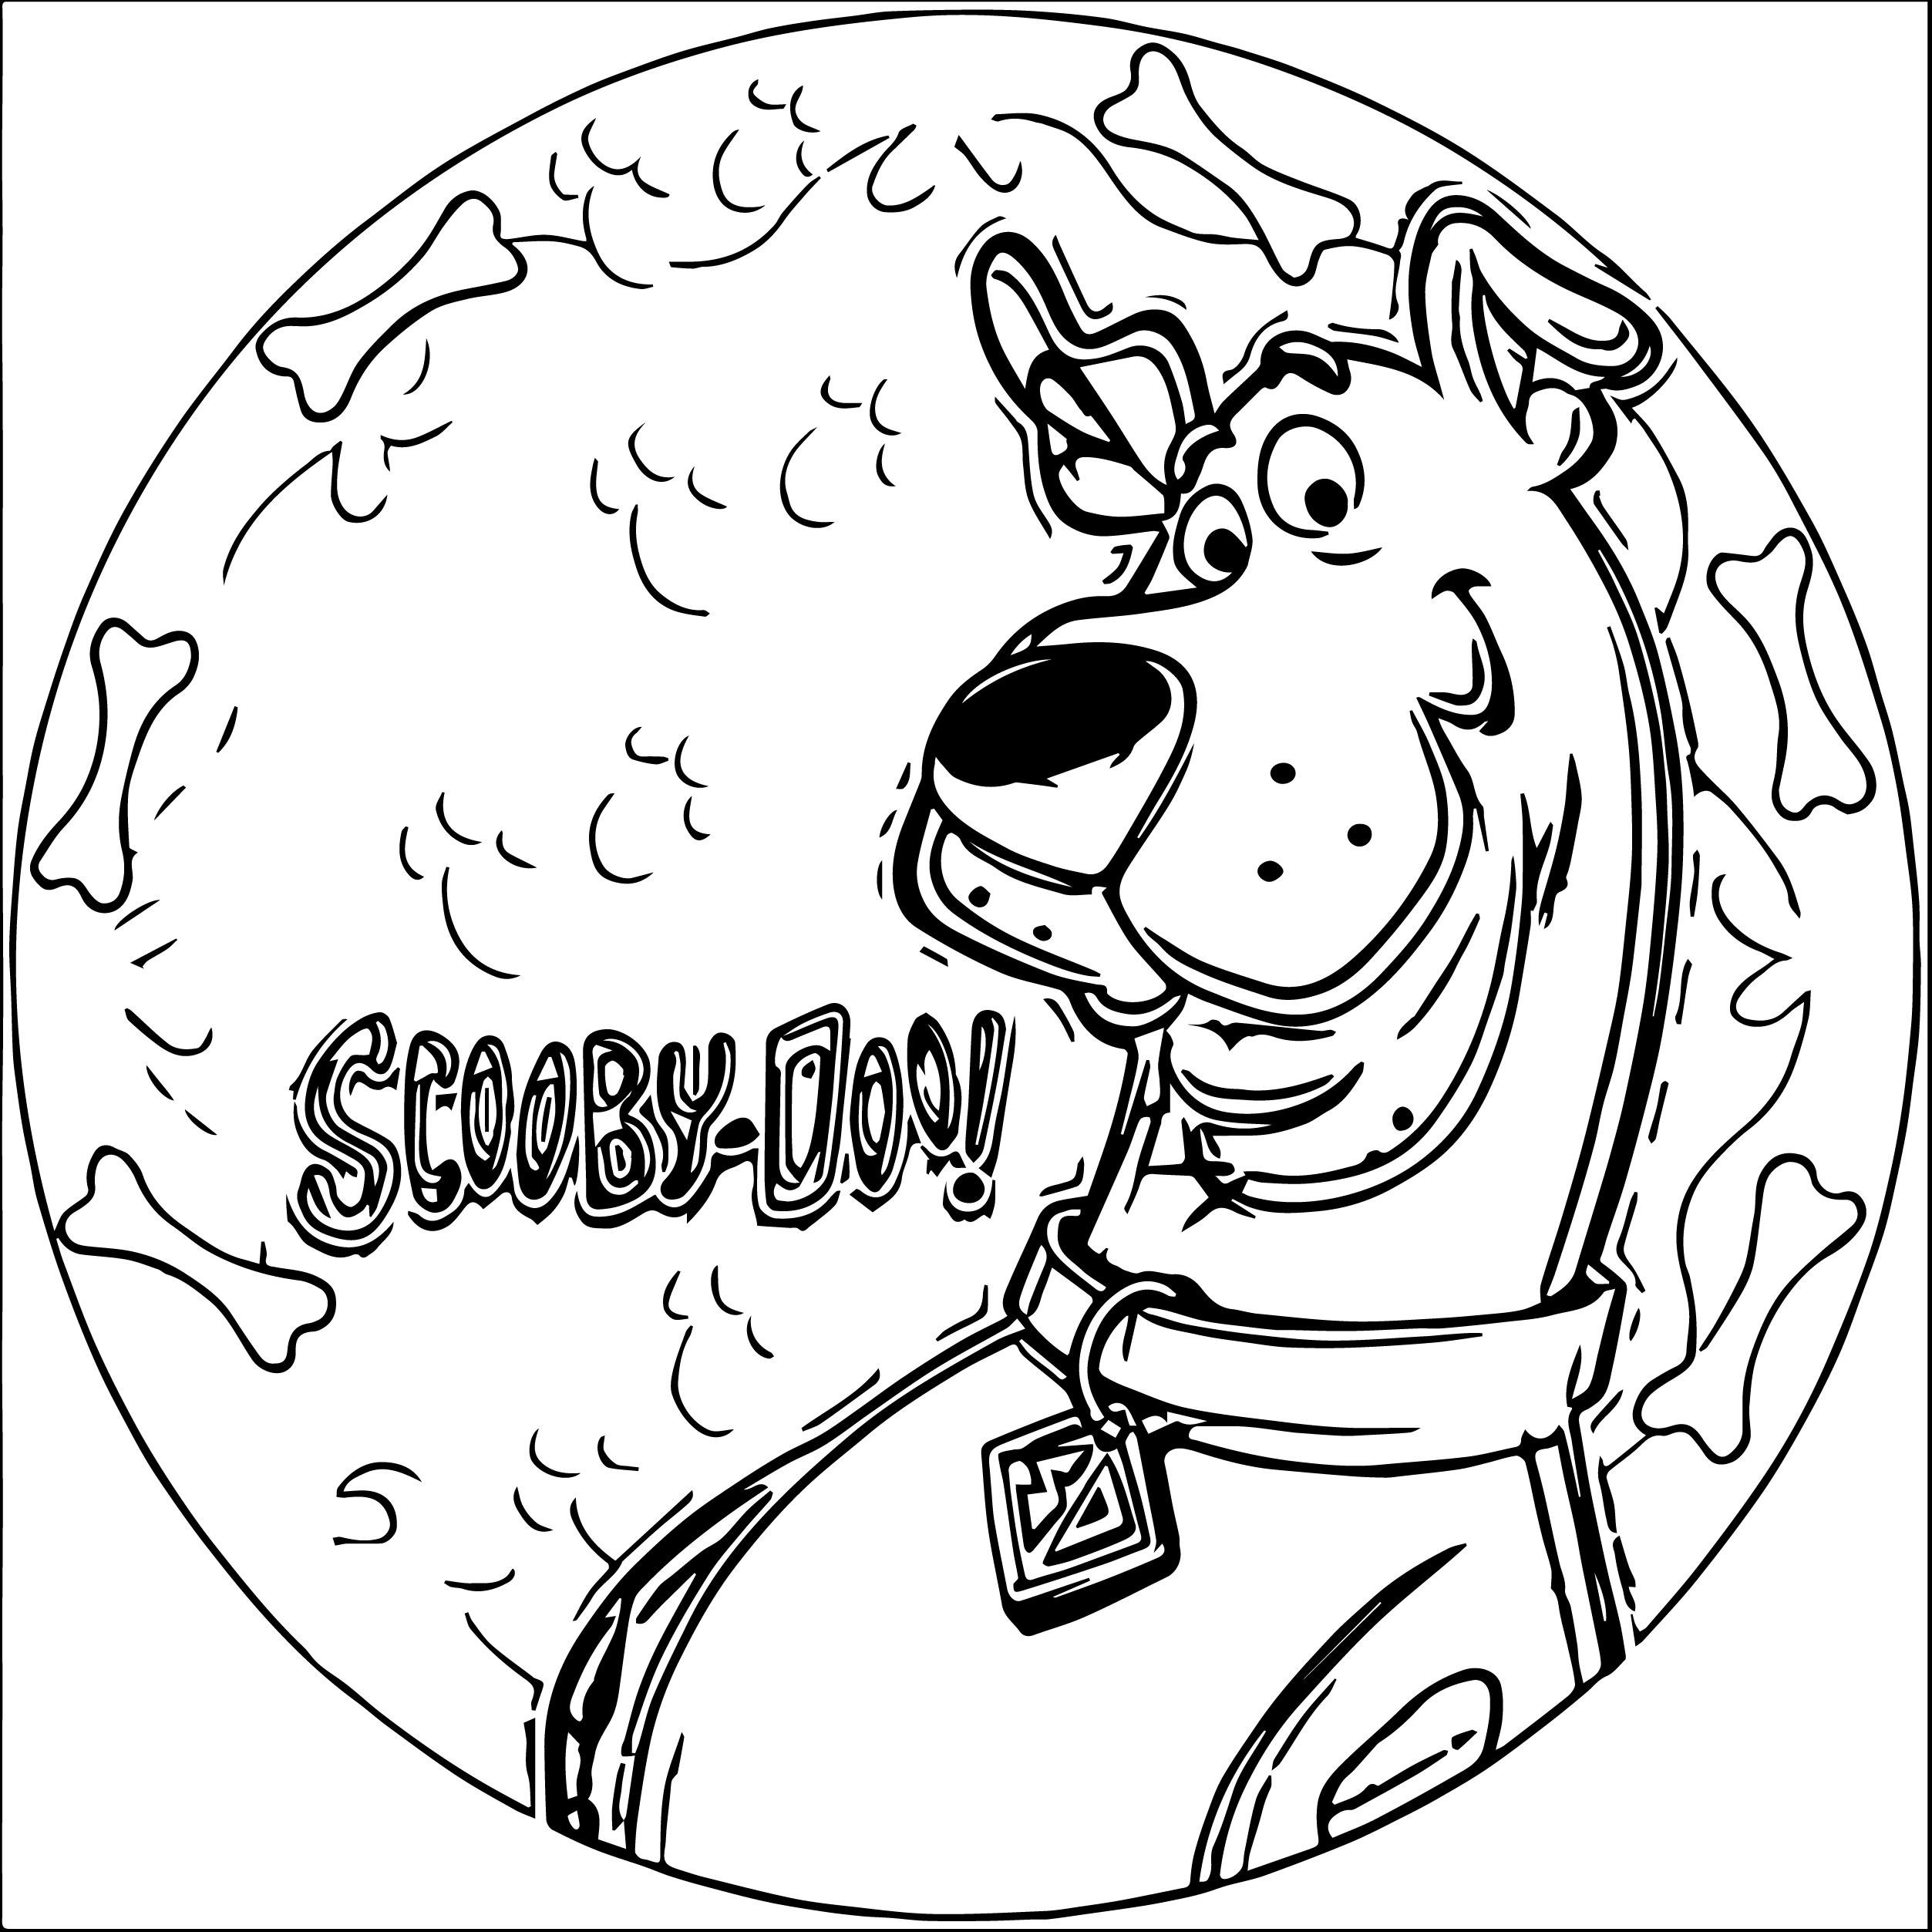 Coloring Sheets For Boys Scooby Doo  Scooby Doo Coloring Pages Coloring